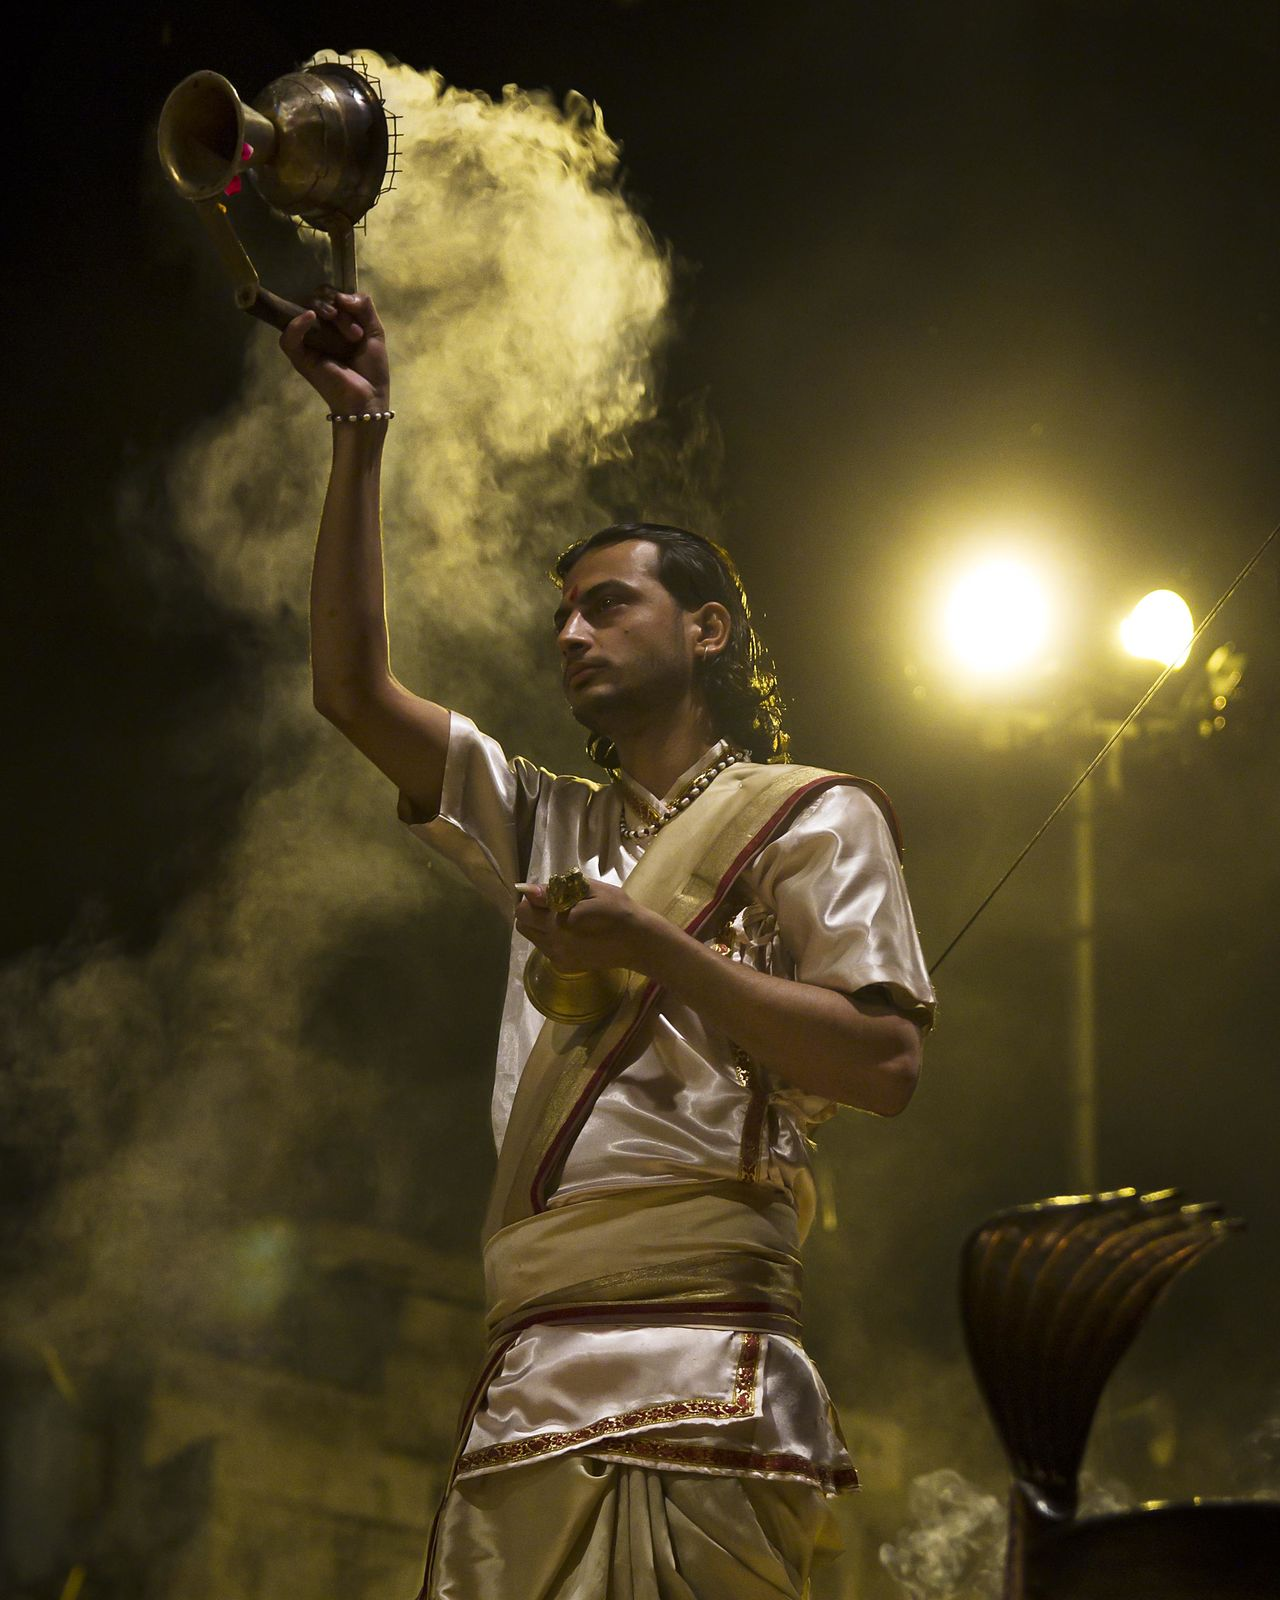 Ceremony India Night One Person Performance Real People Smoke - Physical Structure Spirituality Travel Varanasi